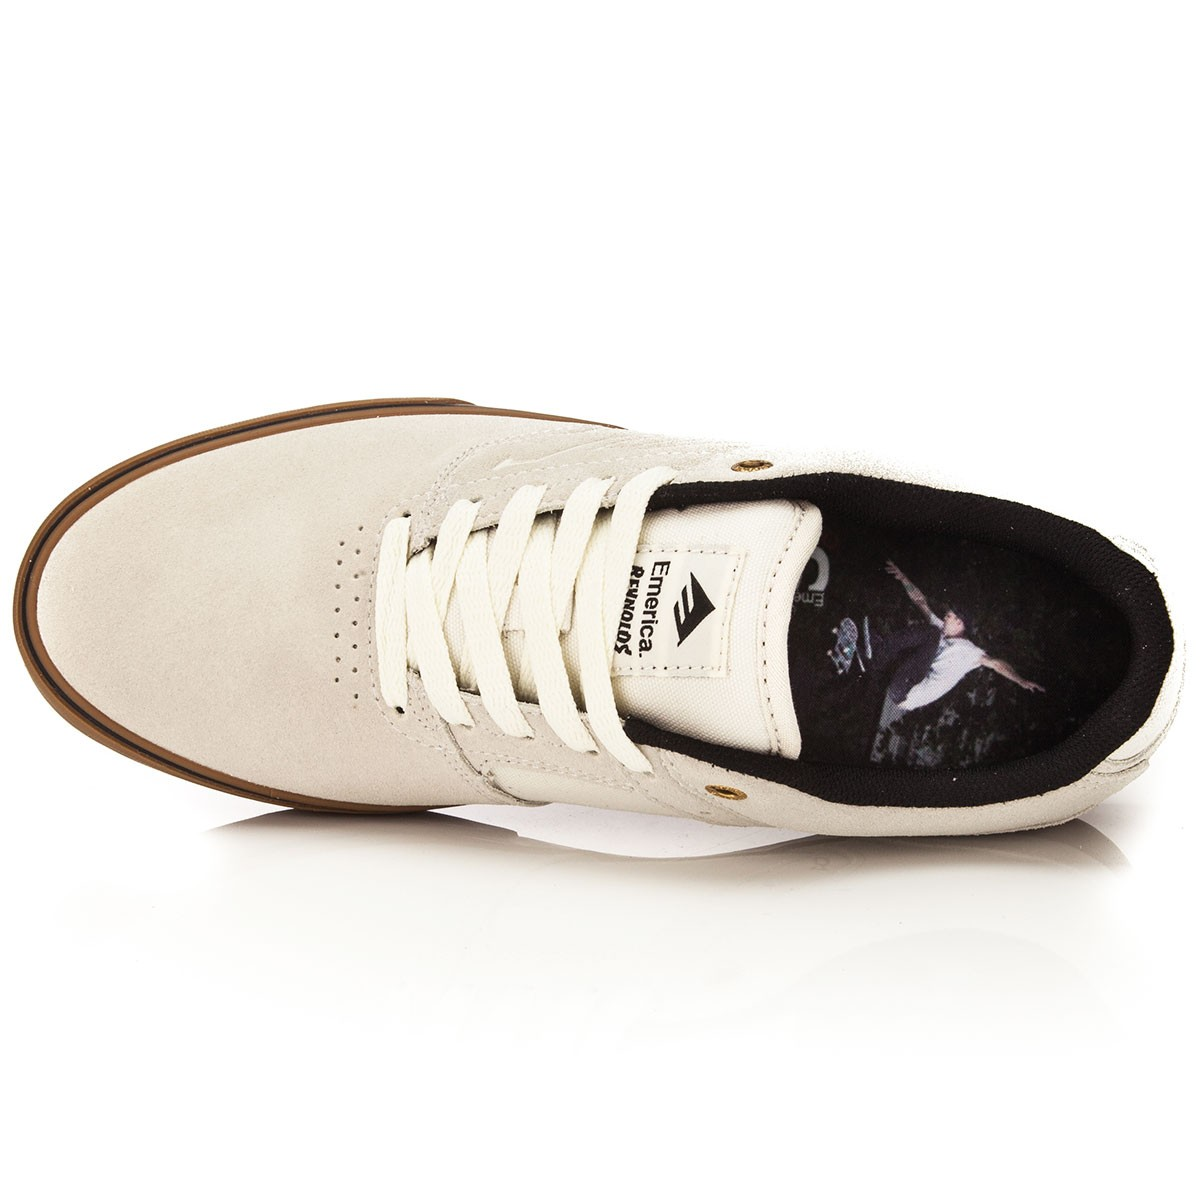 All White Emerica Shoes